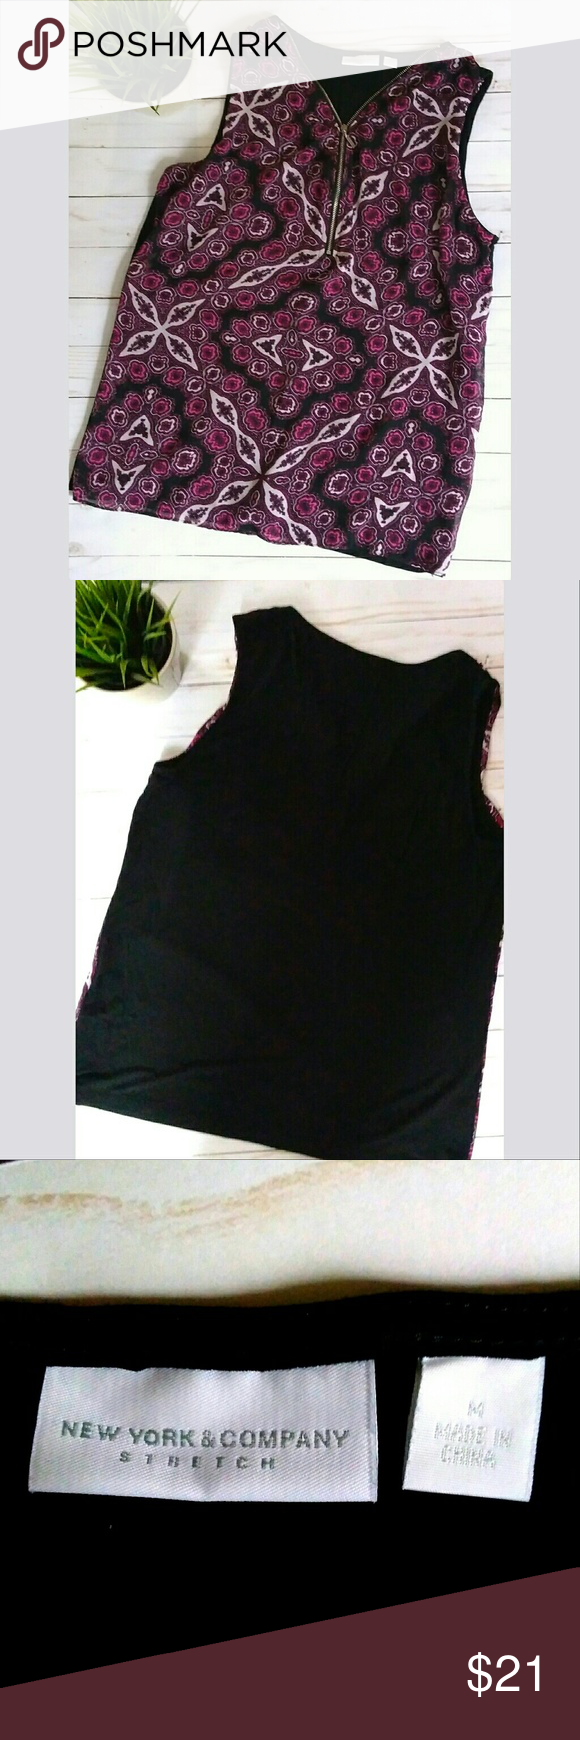 New York & Company sleeveless top with zipper. New York & Company sleeveless top.  It has a zipper on the front down to the bust area.  It has a double layer front. Bottom layer is black and top layer is a black, white and magenta patterned fabric.  It is a very comfy and stretchy top perfect for summer!  Pet free smoke free home. New York & Company Tops